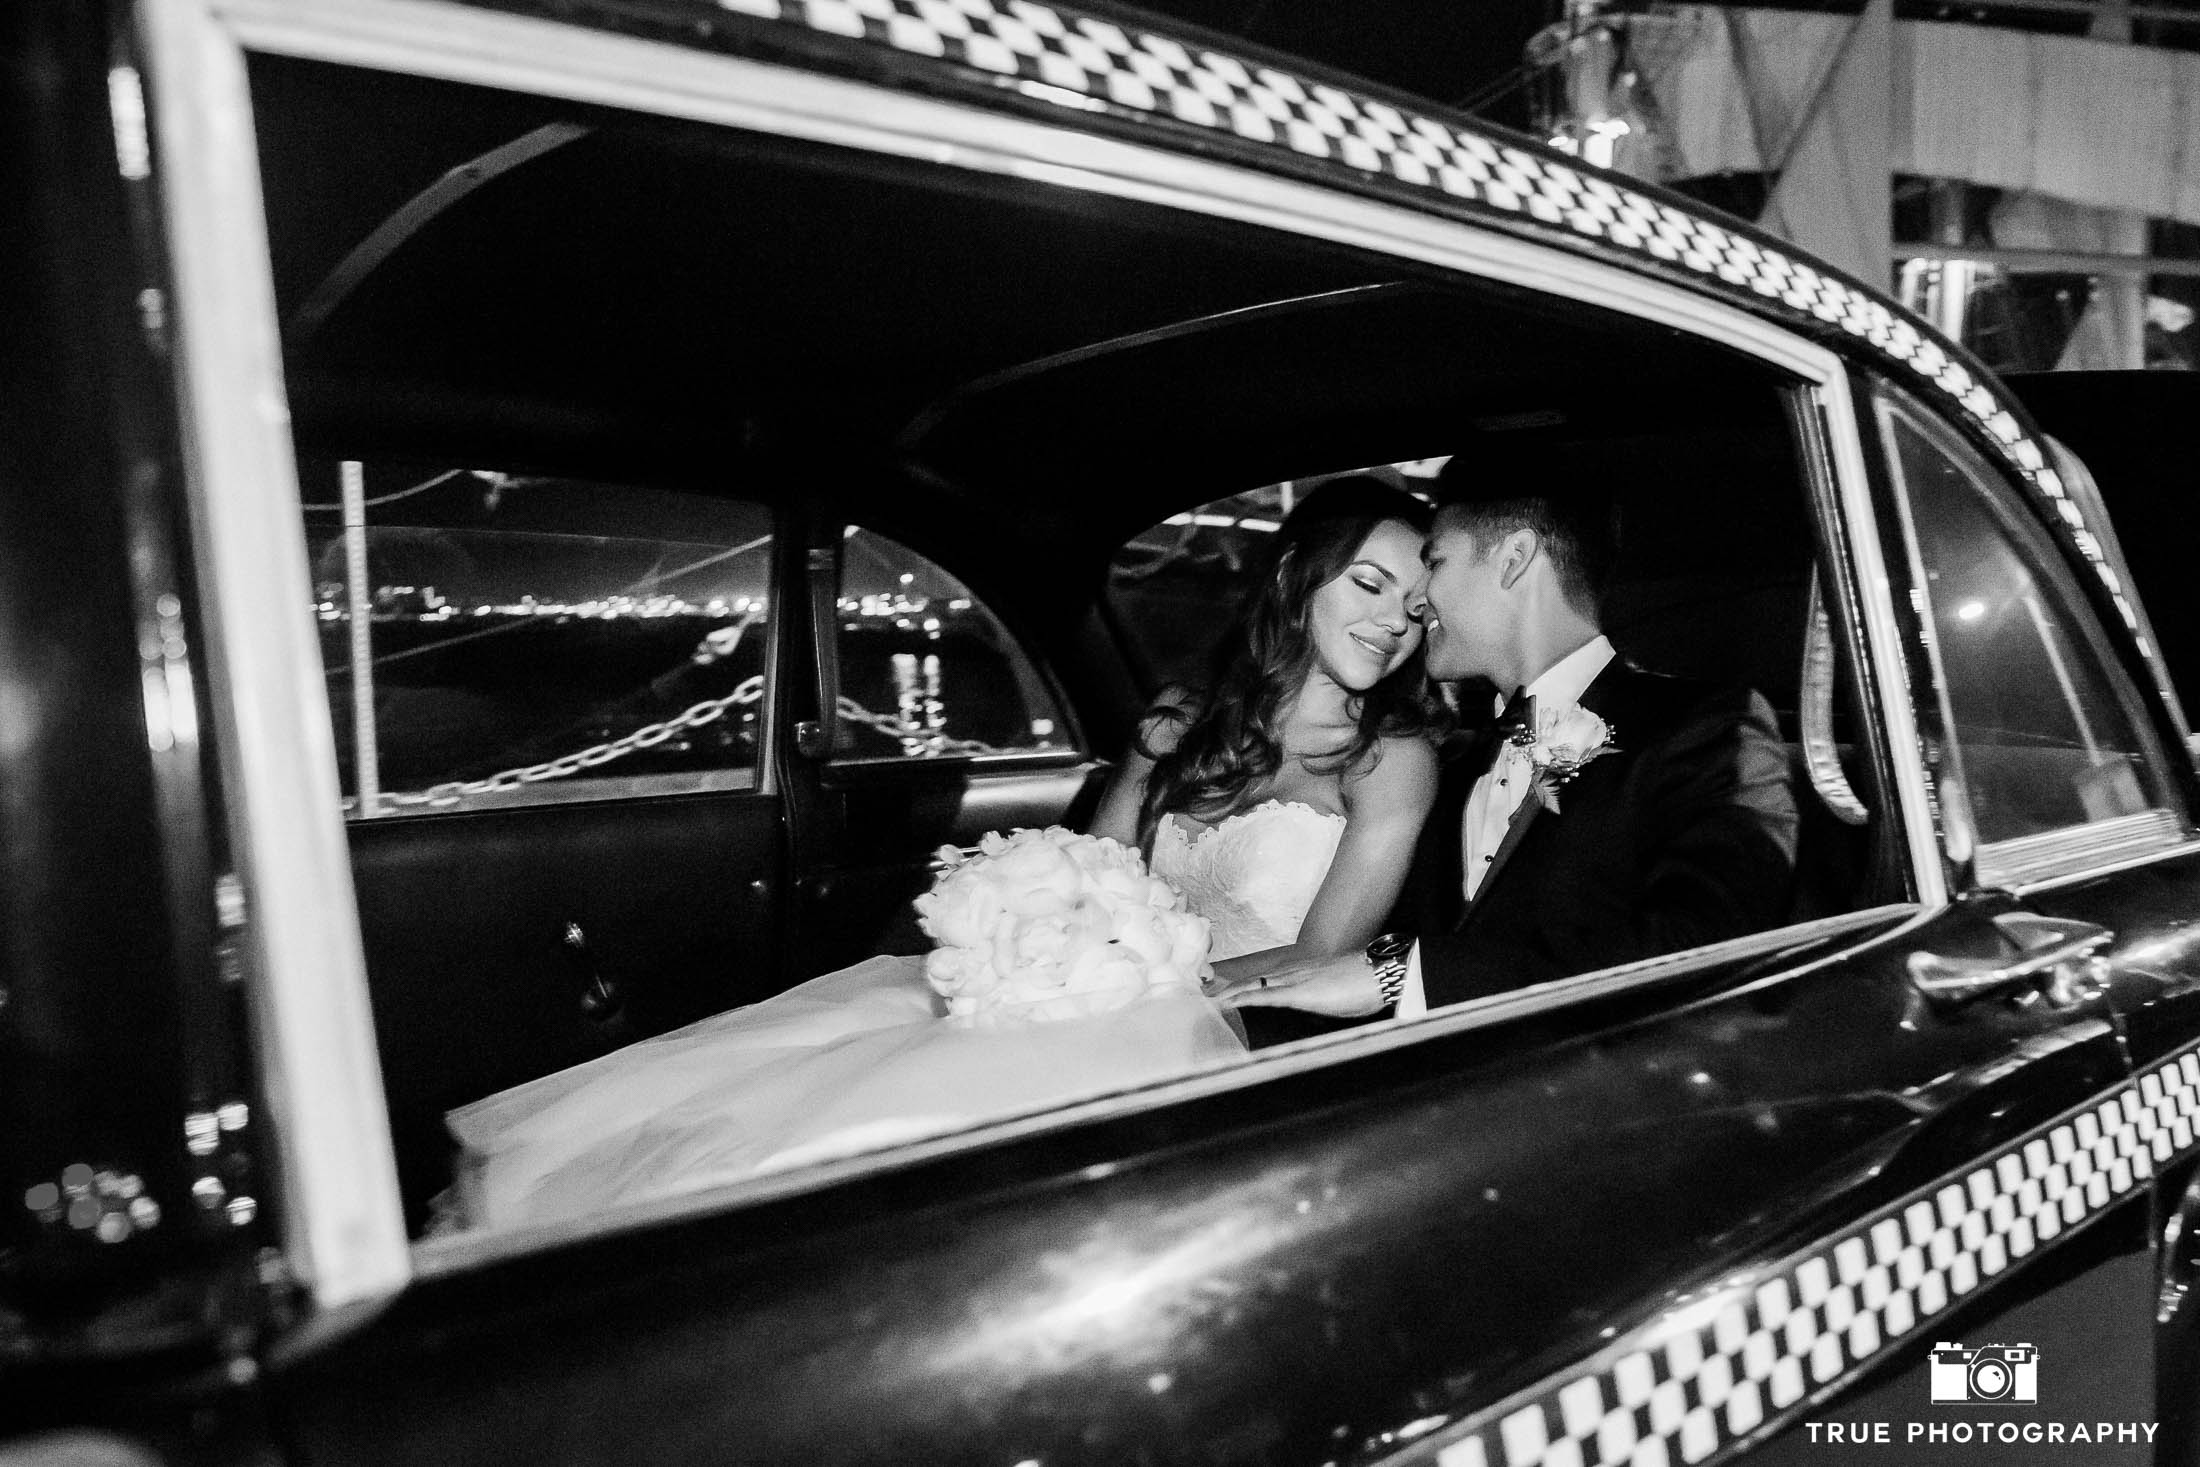 Black and white photo of bride and groom embracing in vintage limo